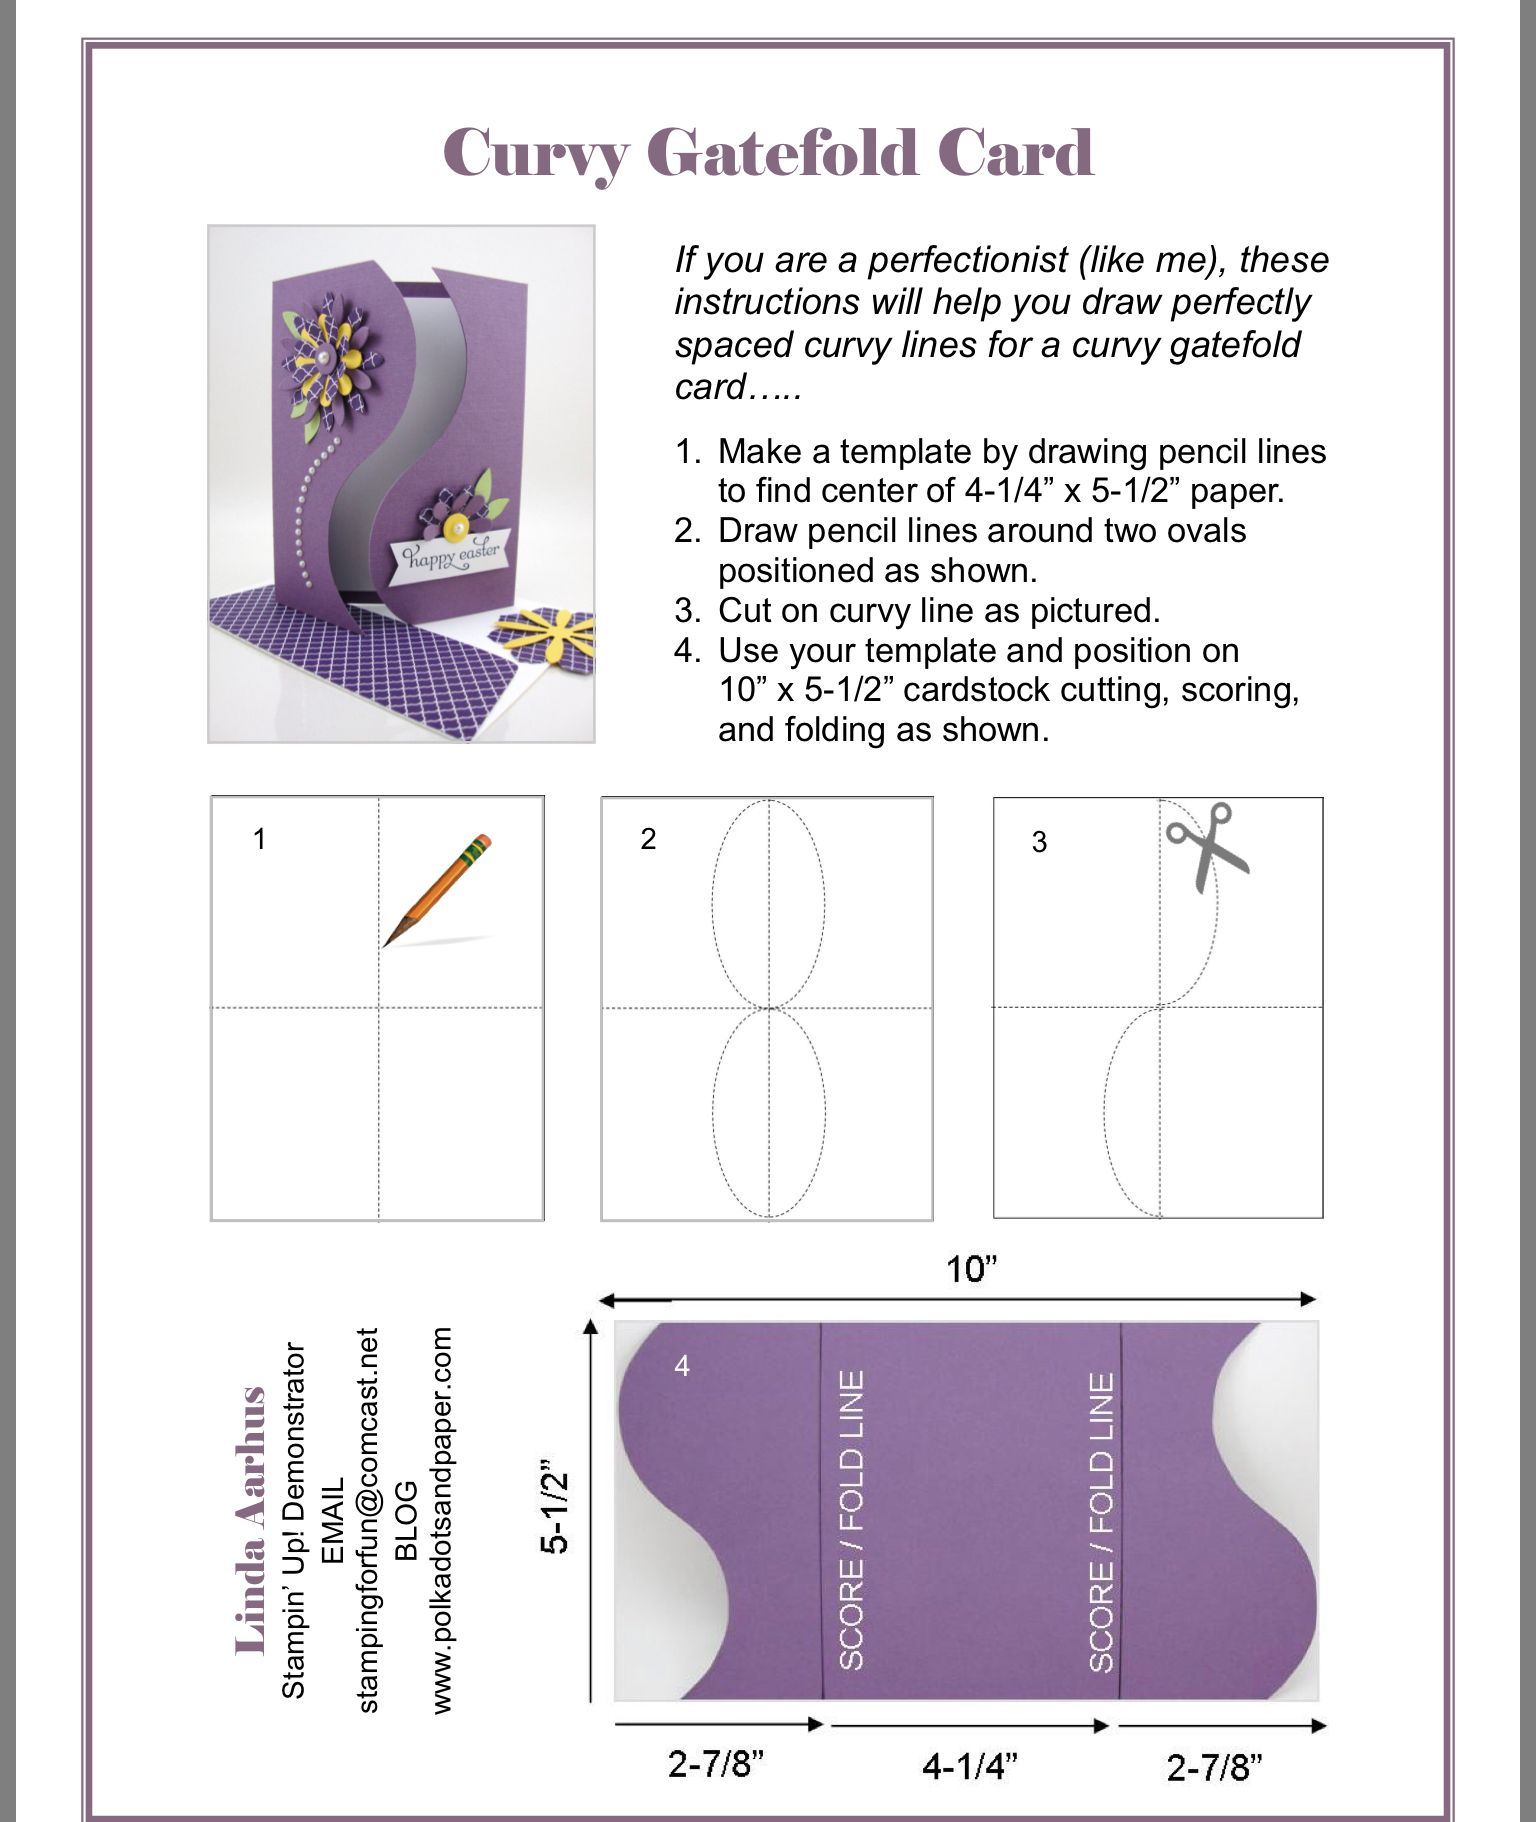 Pin by MJ Gomez on Ideas   Gatefold cards, Card making ...